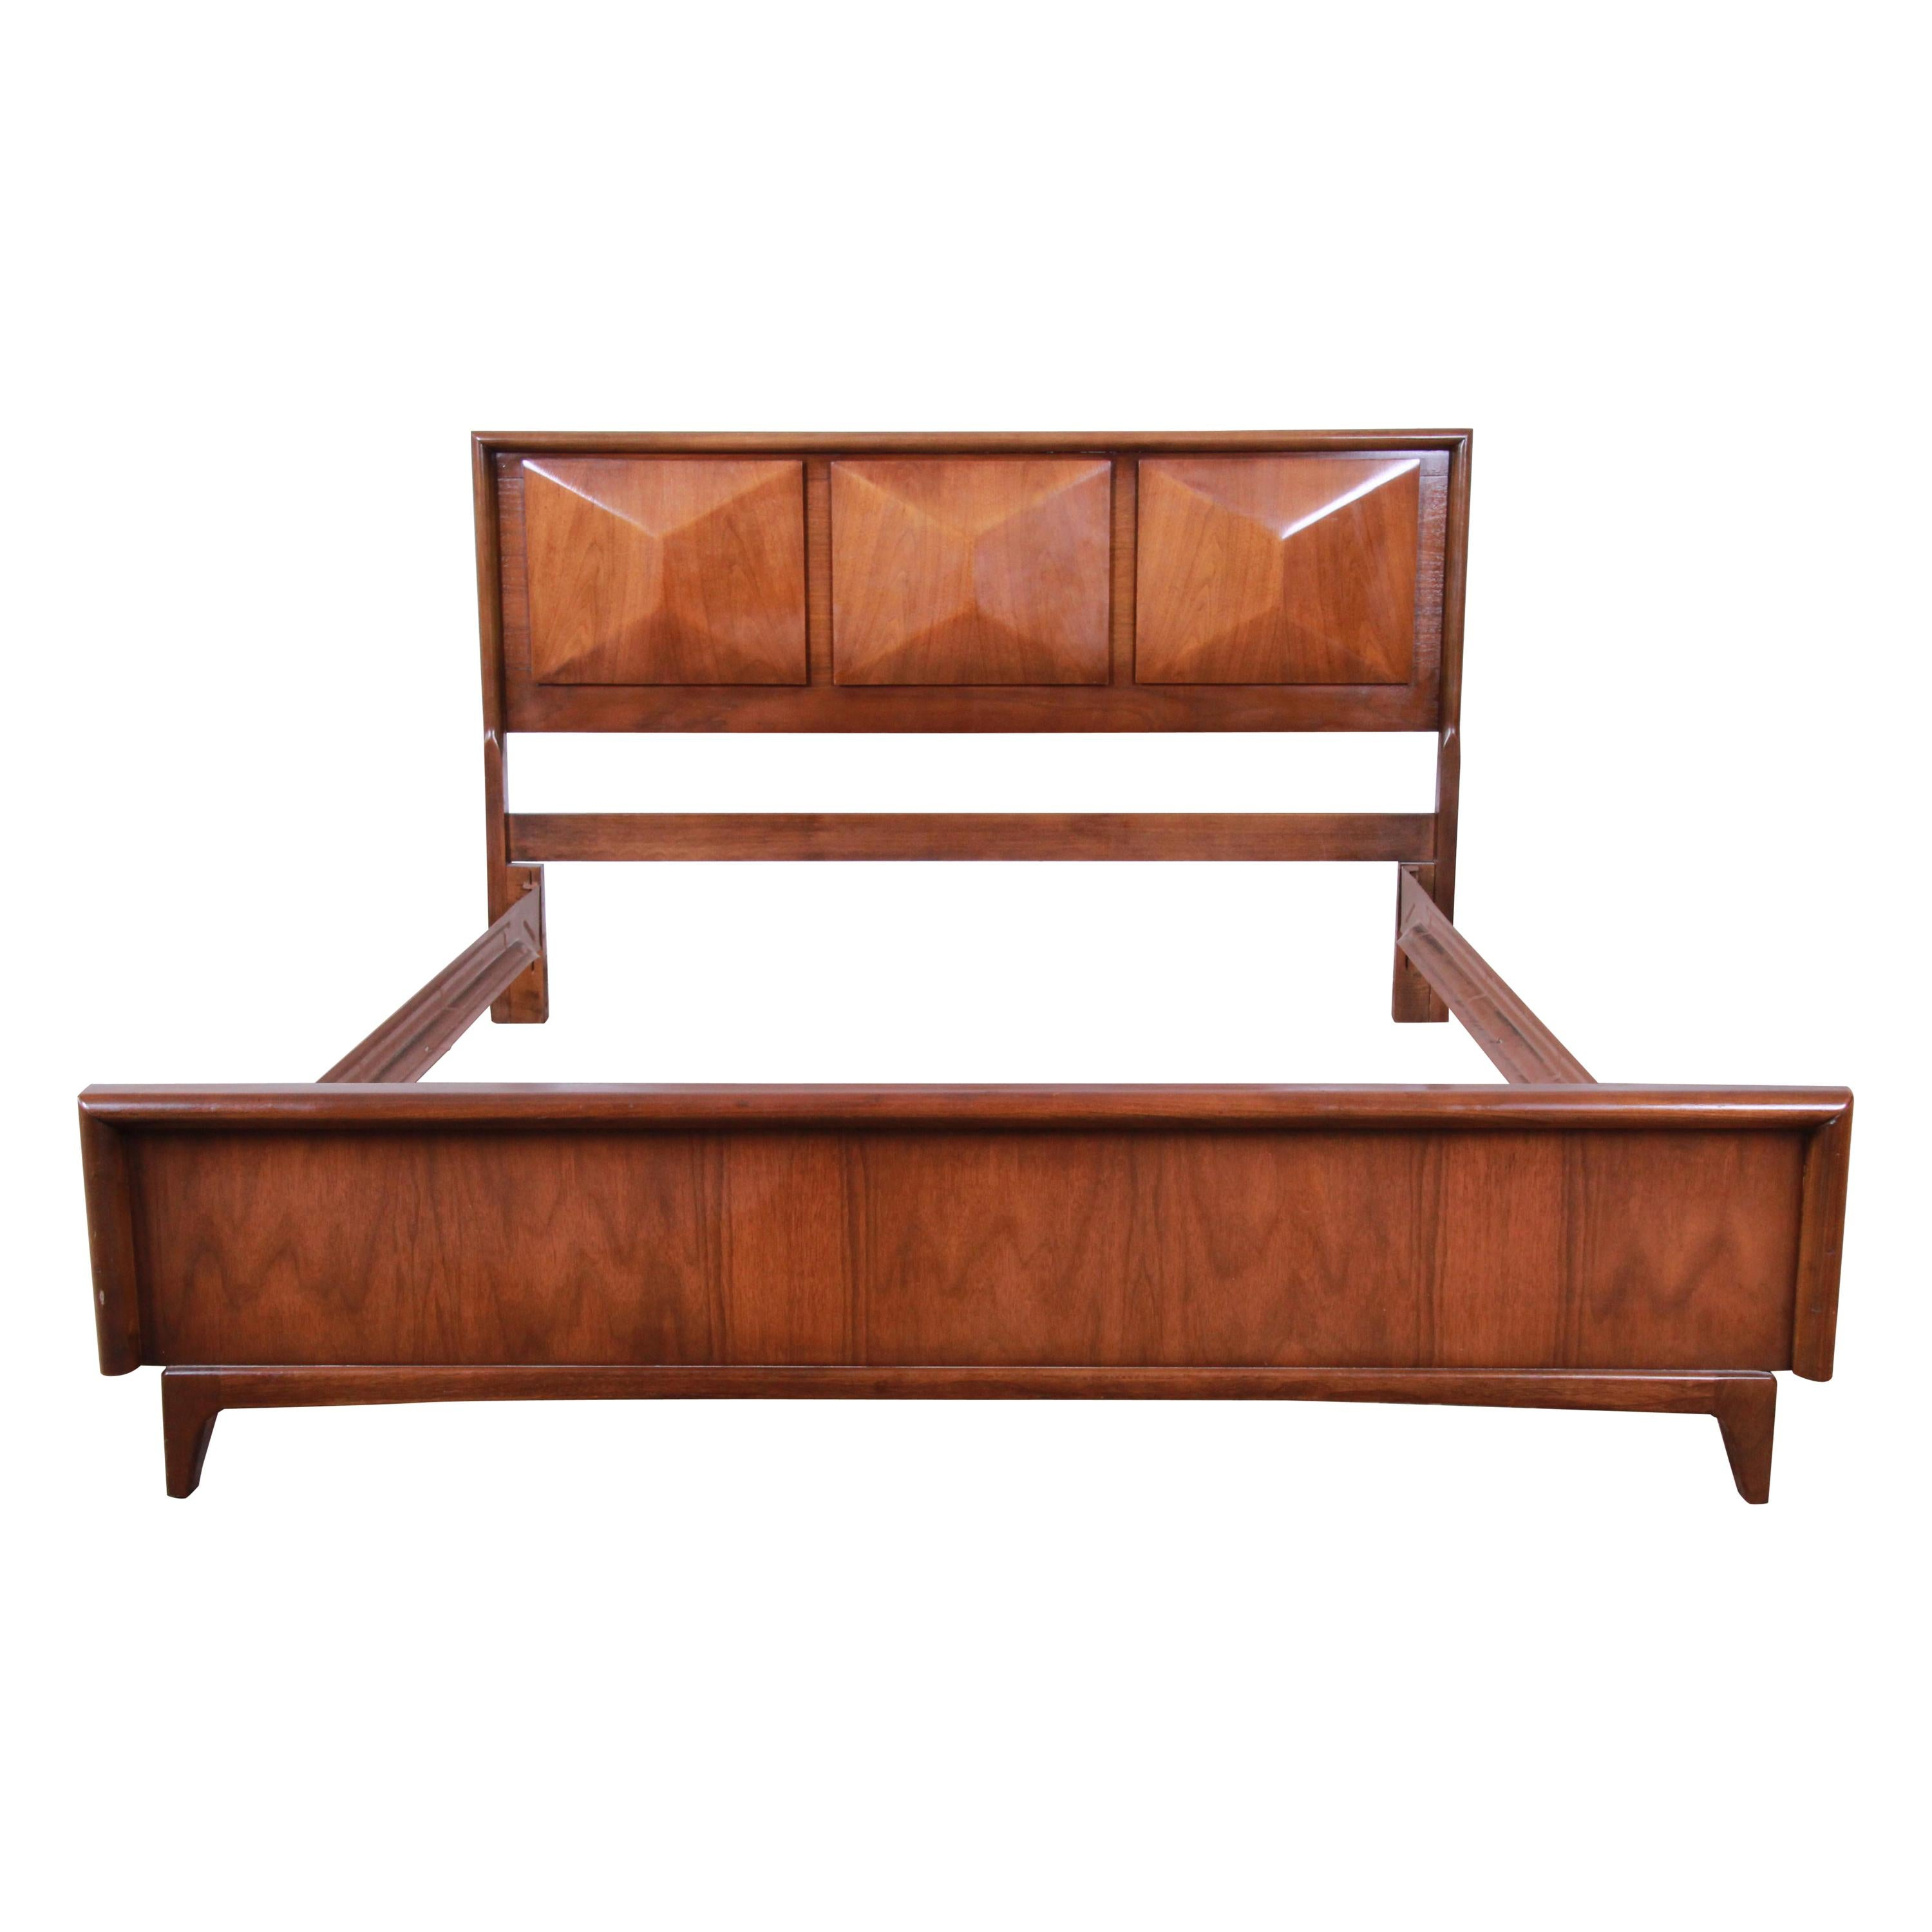 Edwardian (1901-1910) Quality Walnut 1930s Carved Standard Double Bed Arts And Crafts Pretty And Colorful